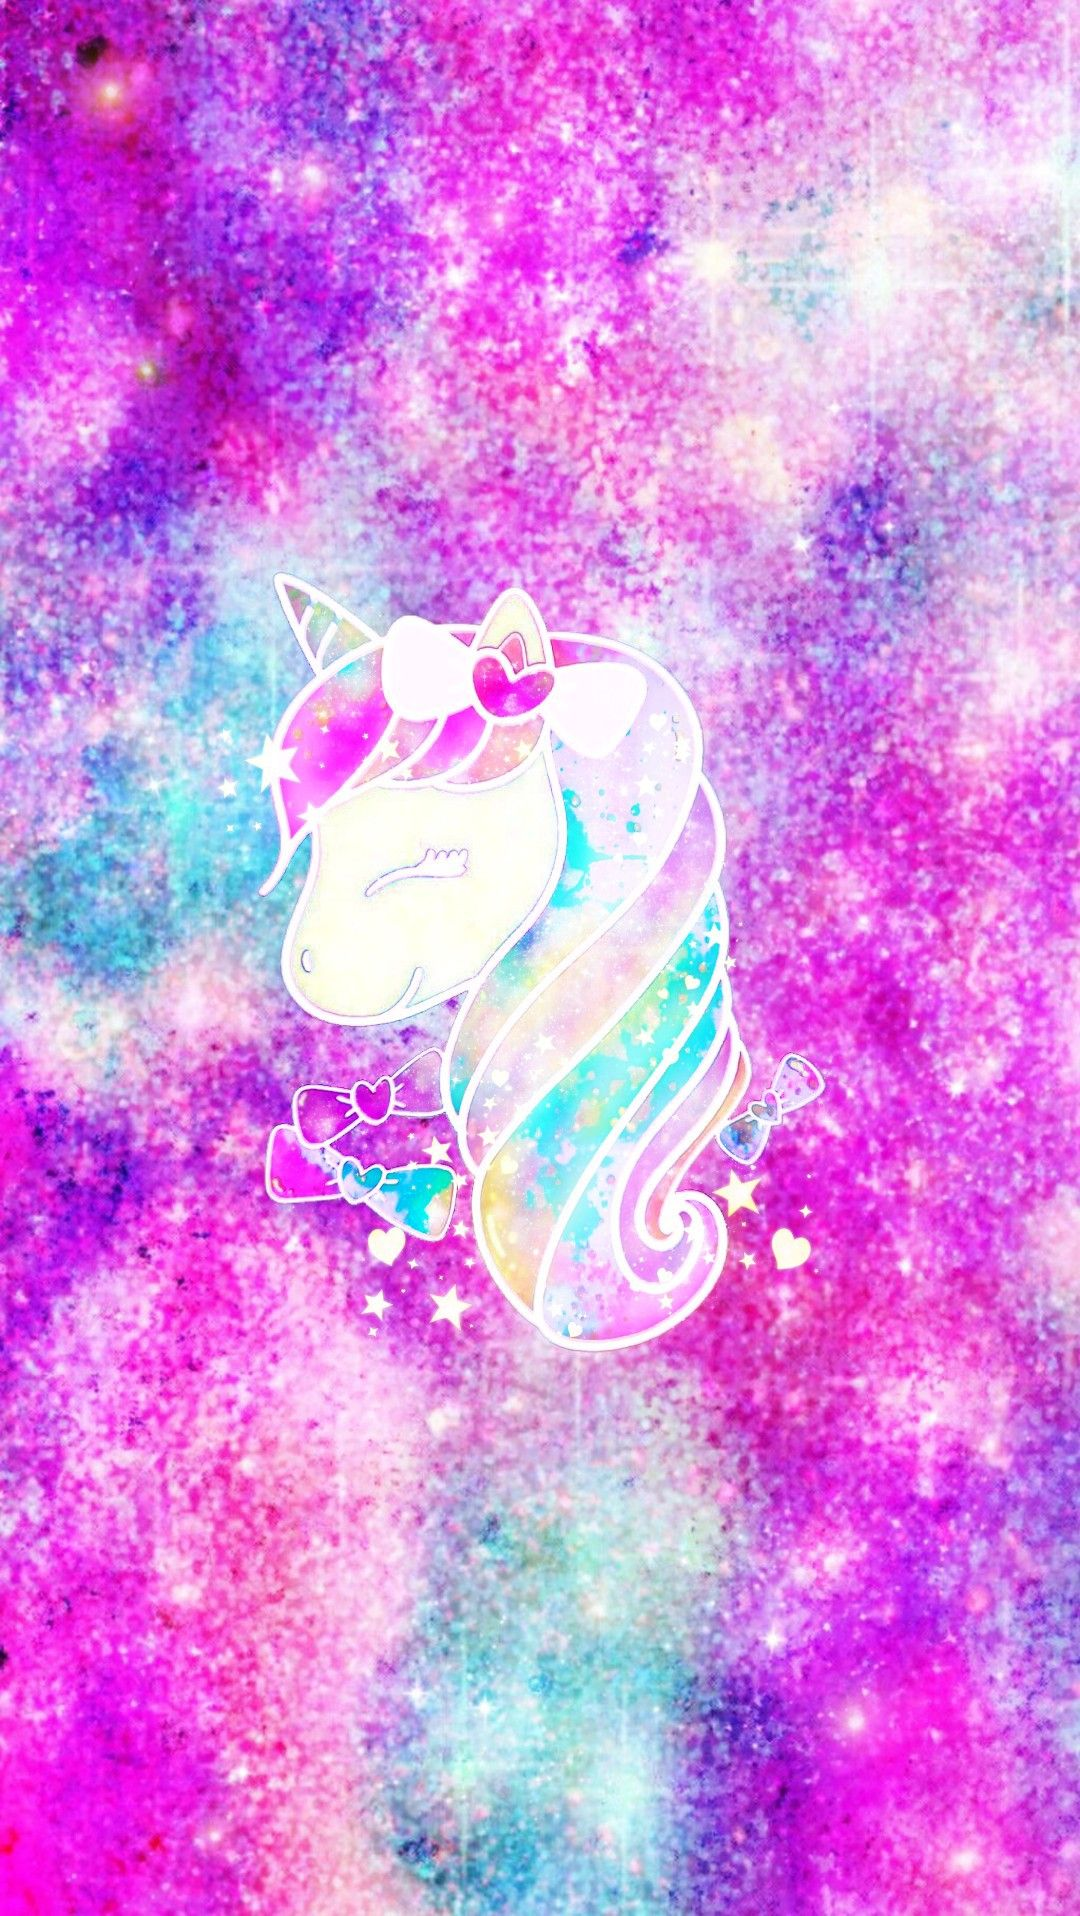 Cute Unicorn Galaxy Sticker By Mpink Background By Me